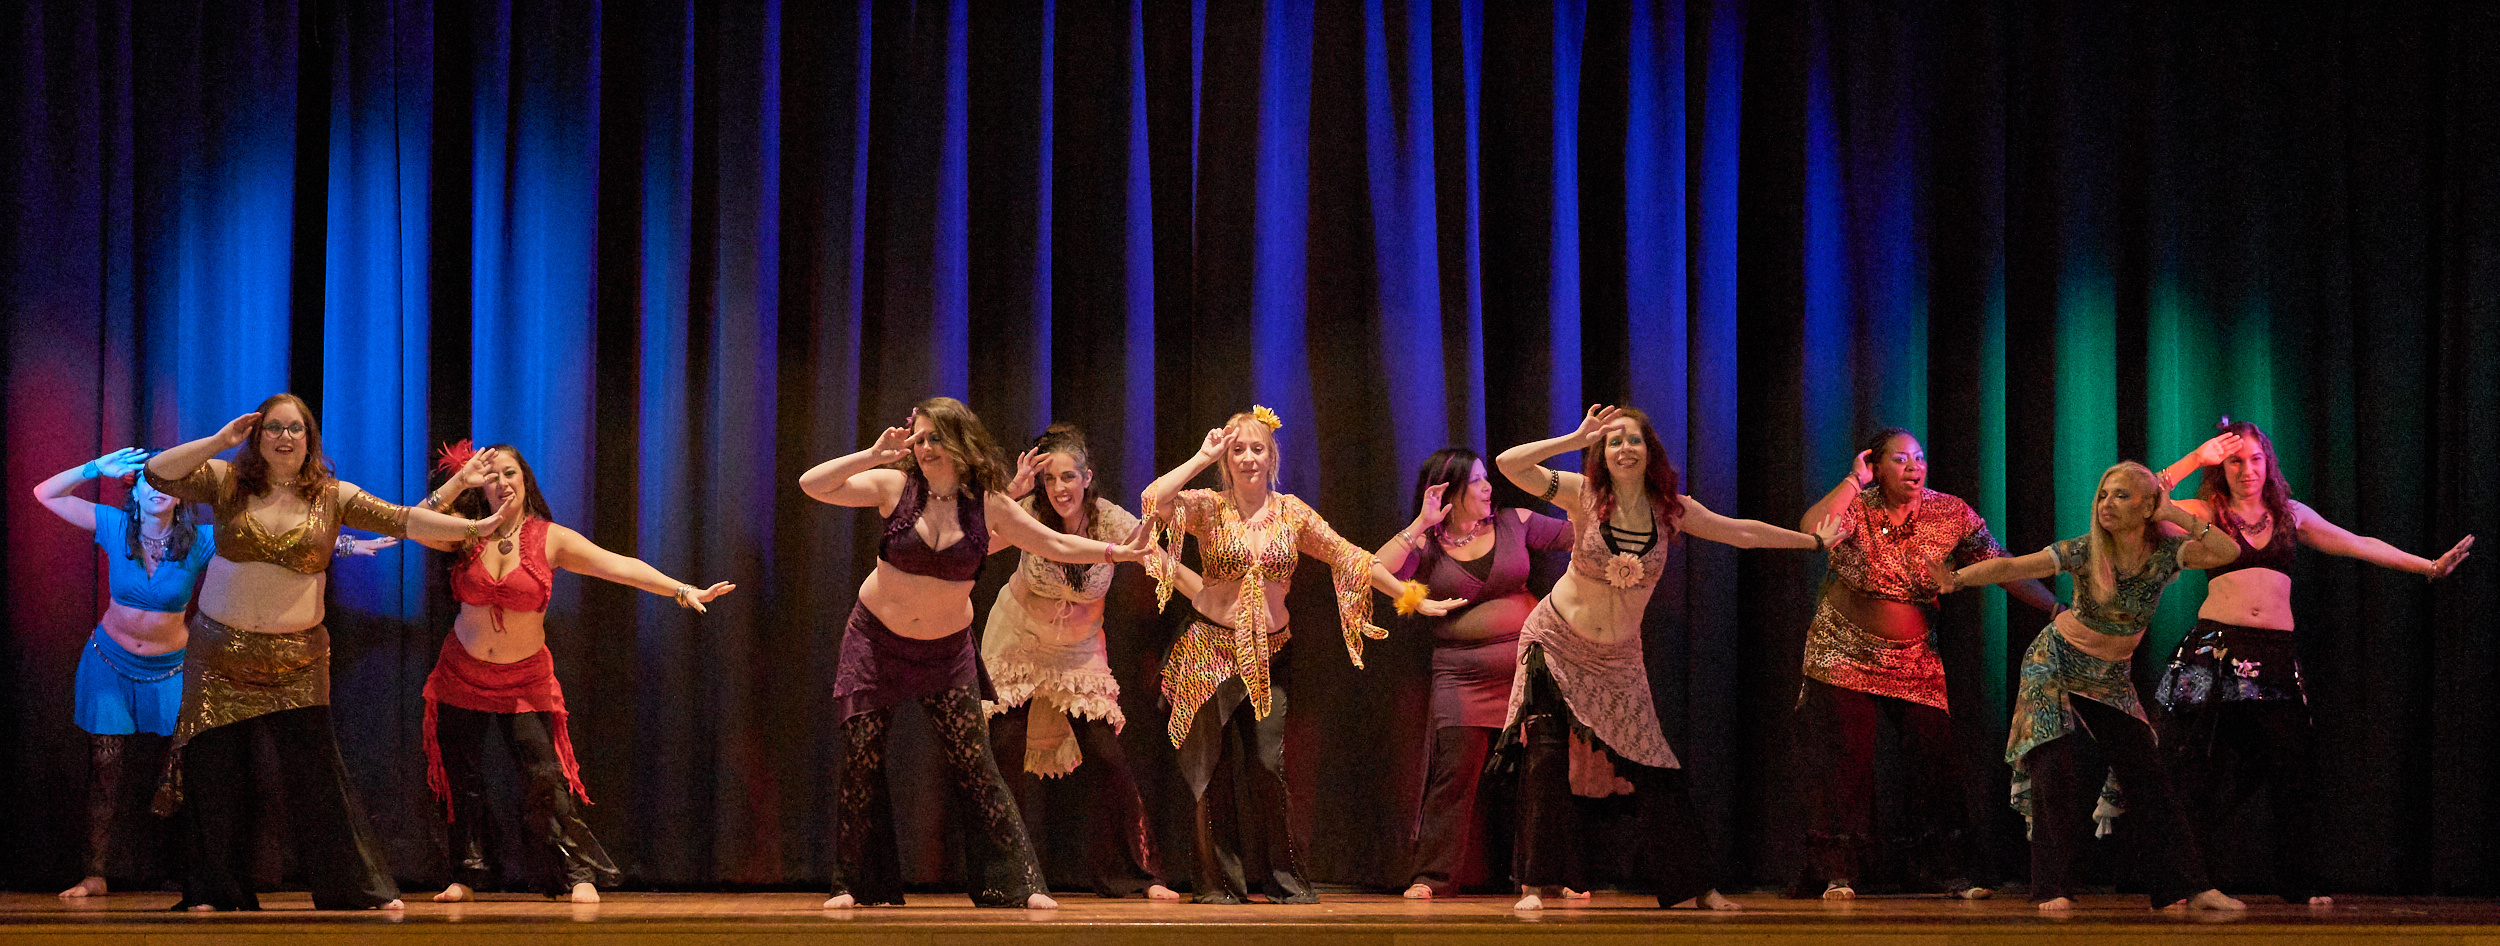 Evening at the Oasis Photos - Over 140 people attended our third annual Evening at the Oasis dance festival. It was a fun evening with great dance performances. Thanks to Melissa McParland and all the volunteers and dancers who worked so hard to make this event possible. Check out the photos here.